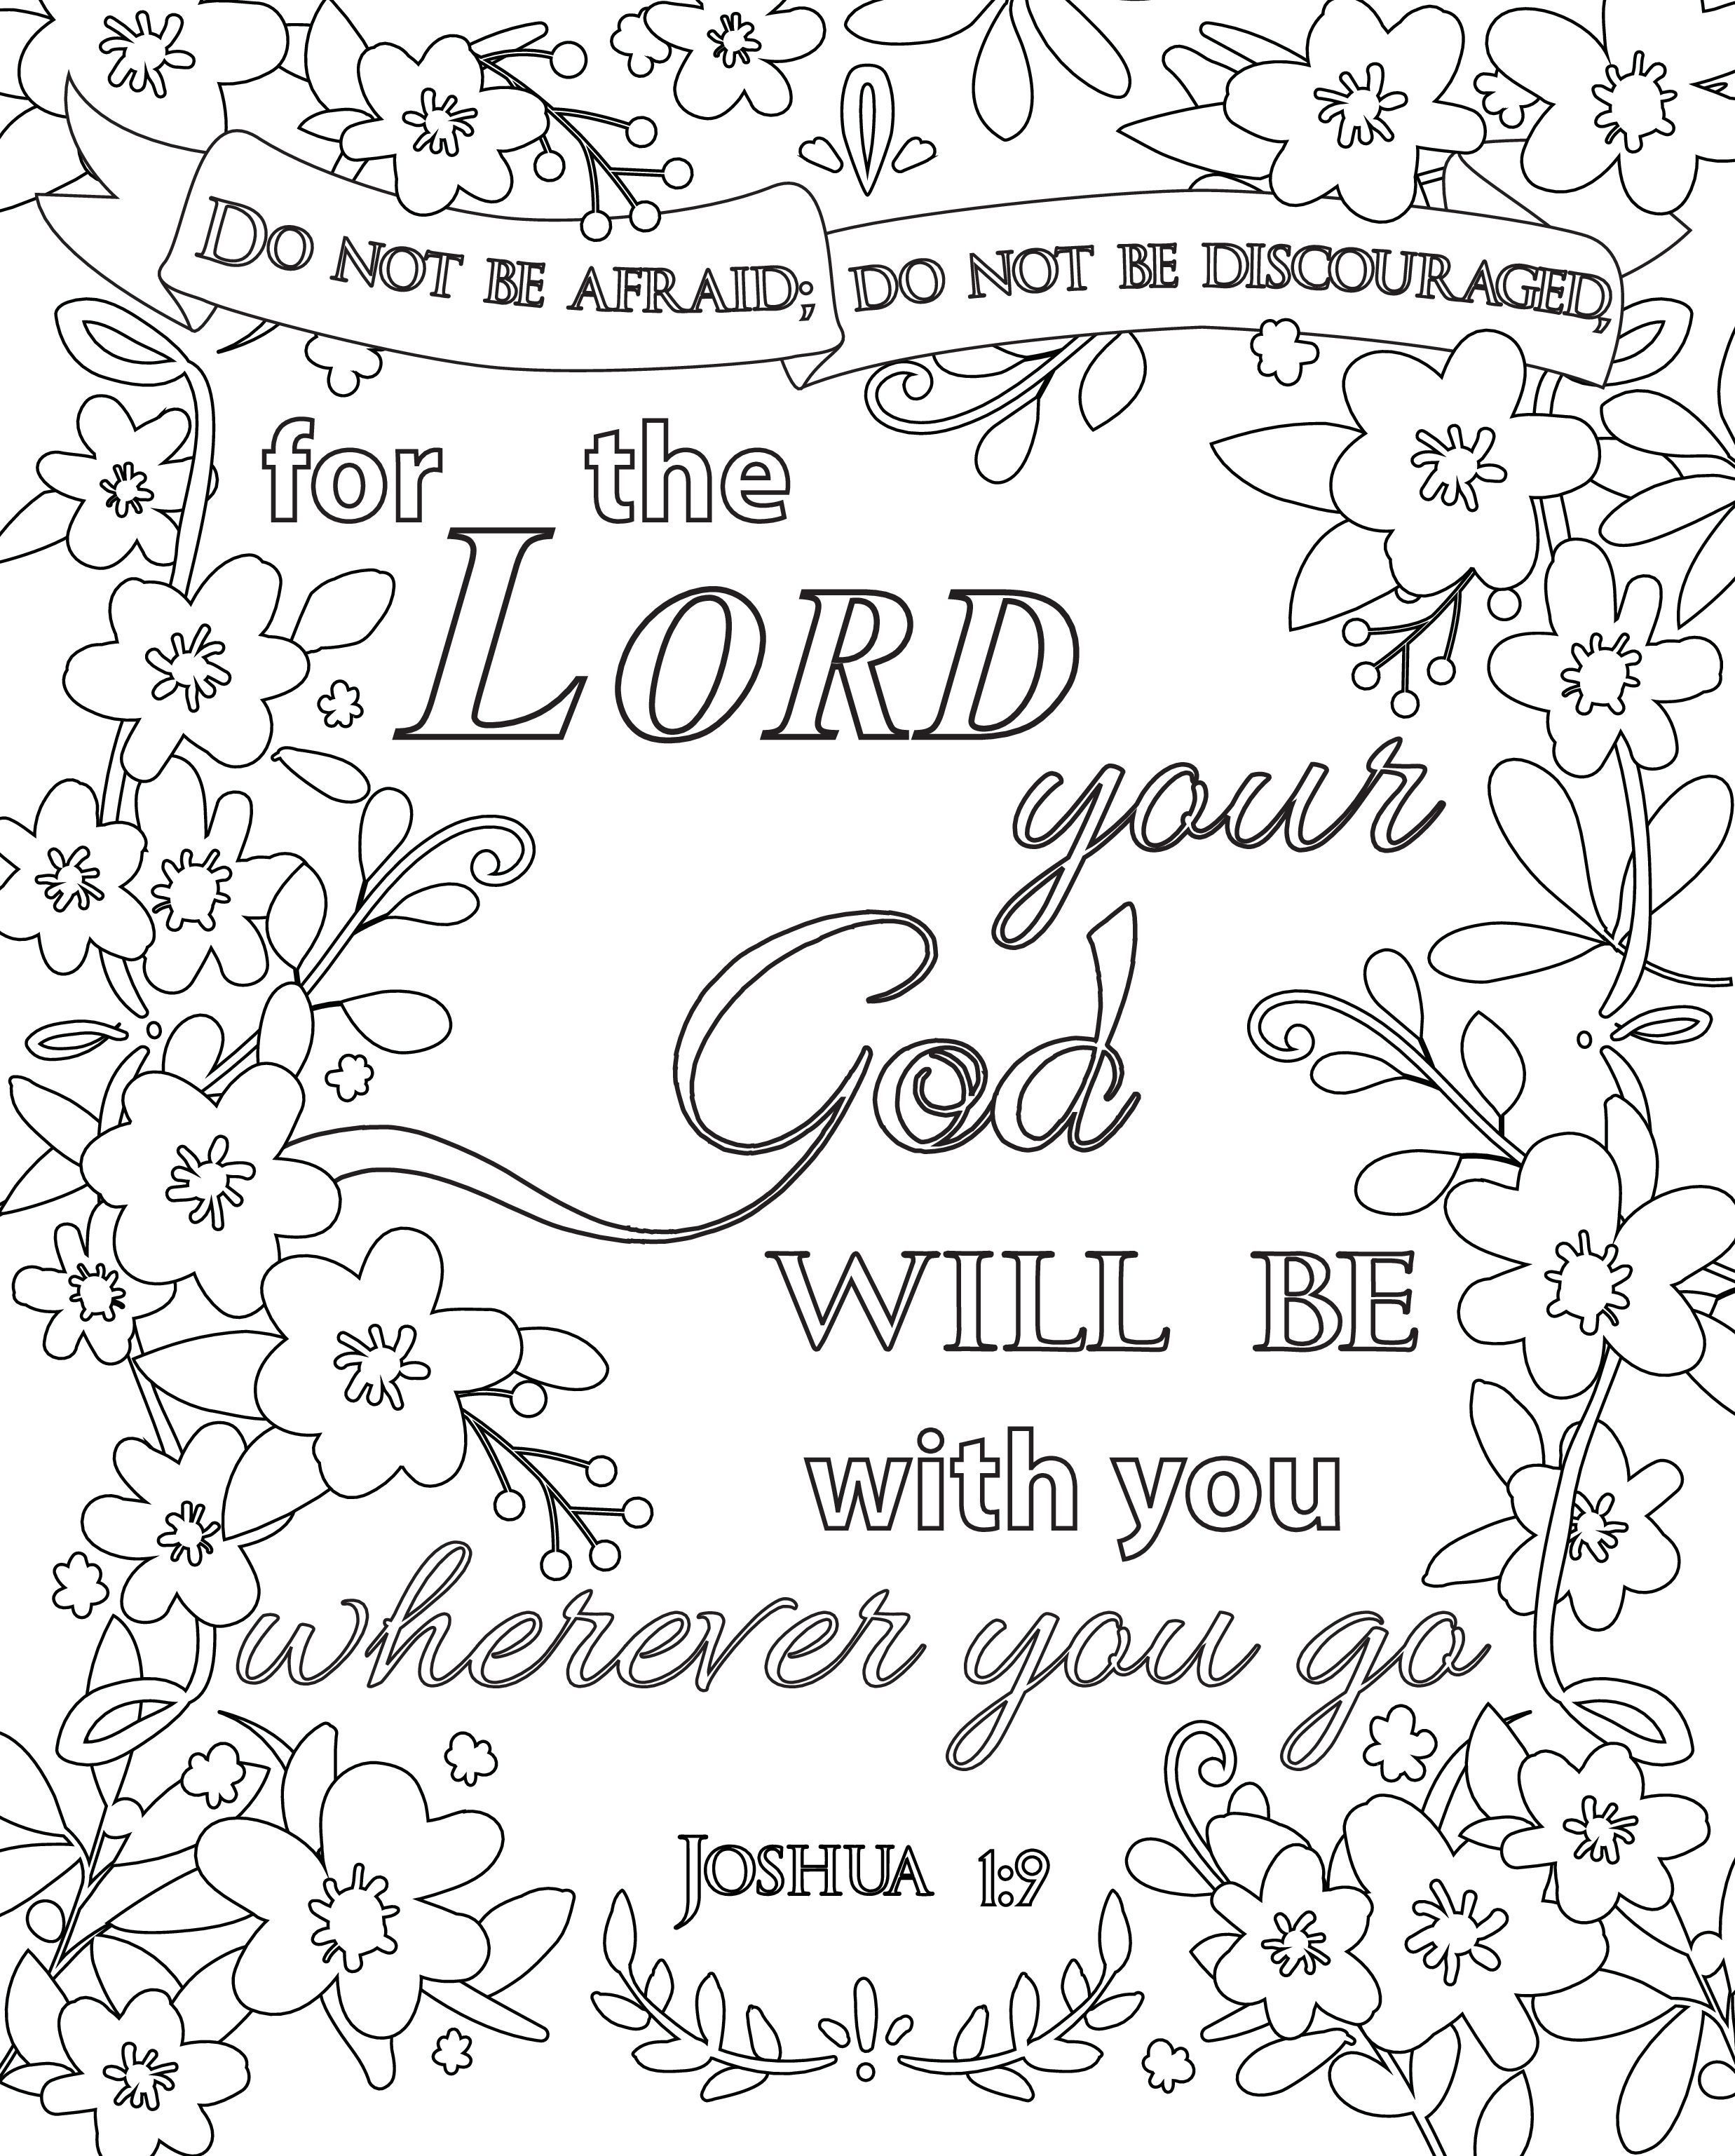 Mymommyblogs Com Nbspthis Website Is For Sale Nbspmymommyblogs Resources And Information Coloring Pages Inspirational Bible Verse Coloring Page Bible Coloring Sheets